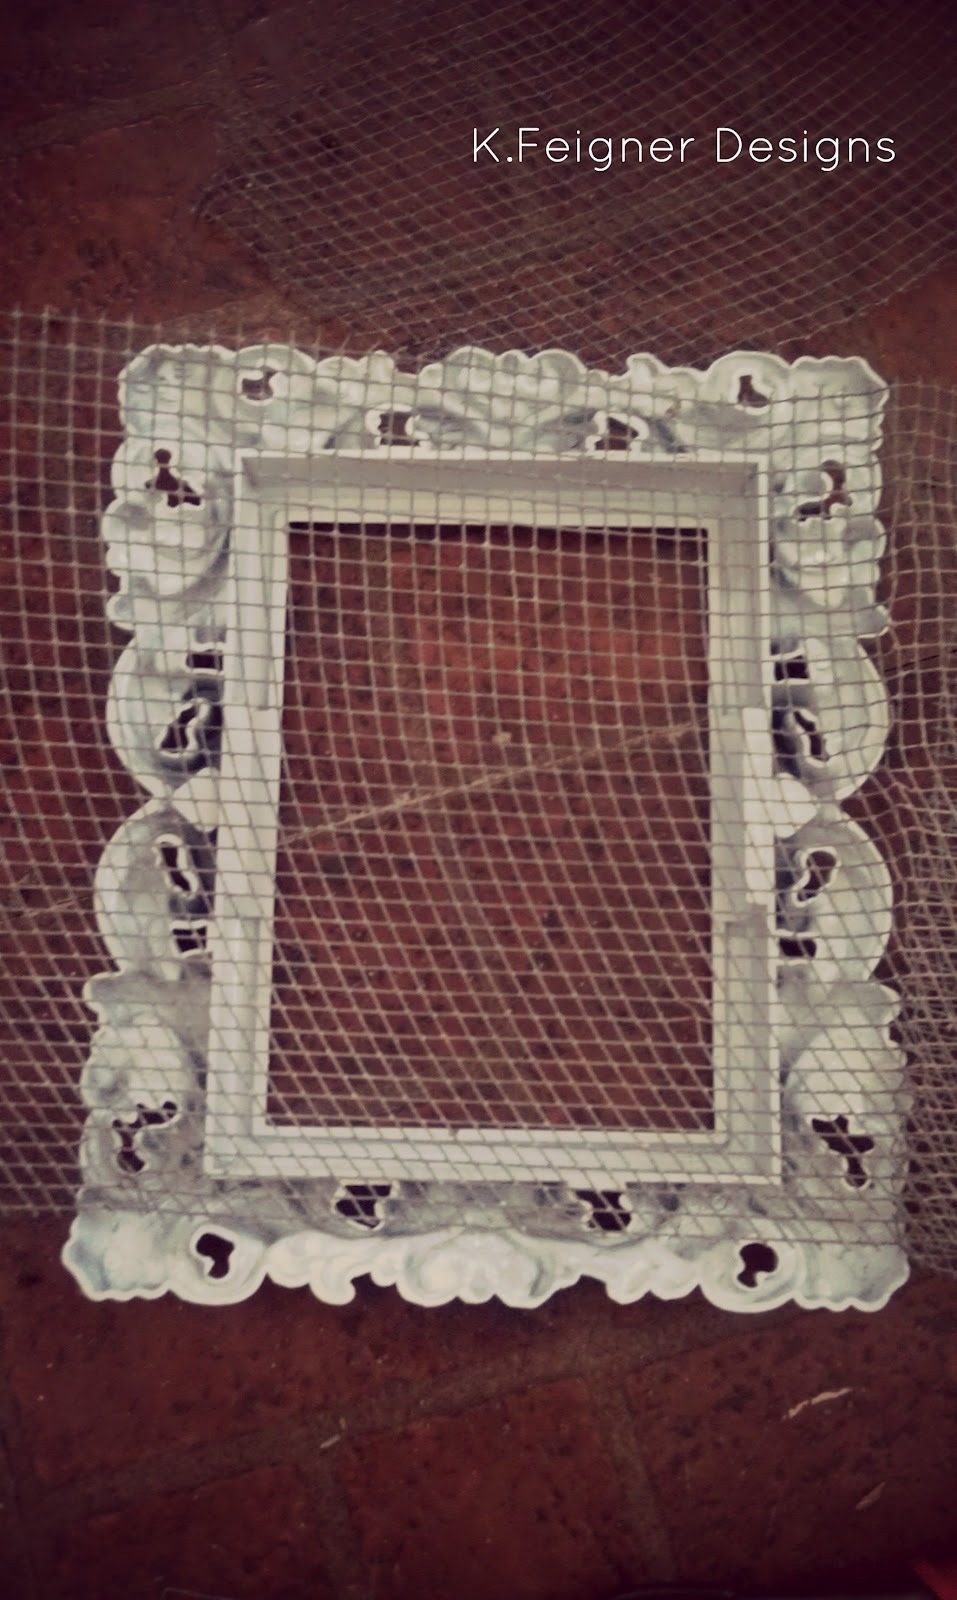 Place the net on picture frame. And glue it then cut off all excess lace in frame.